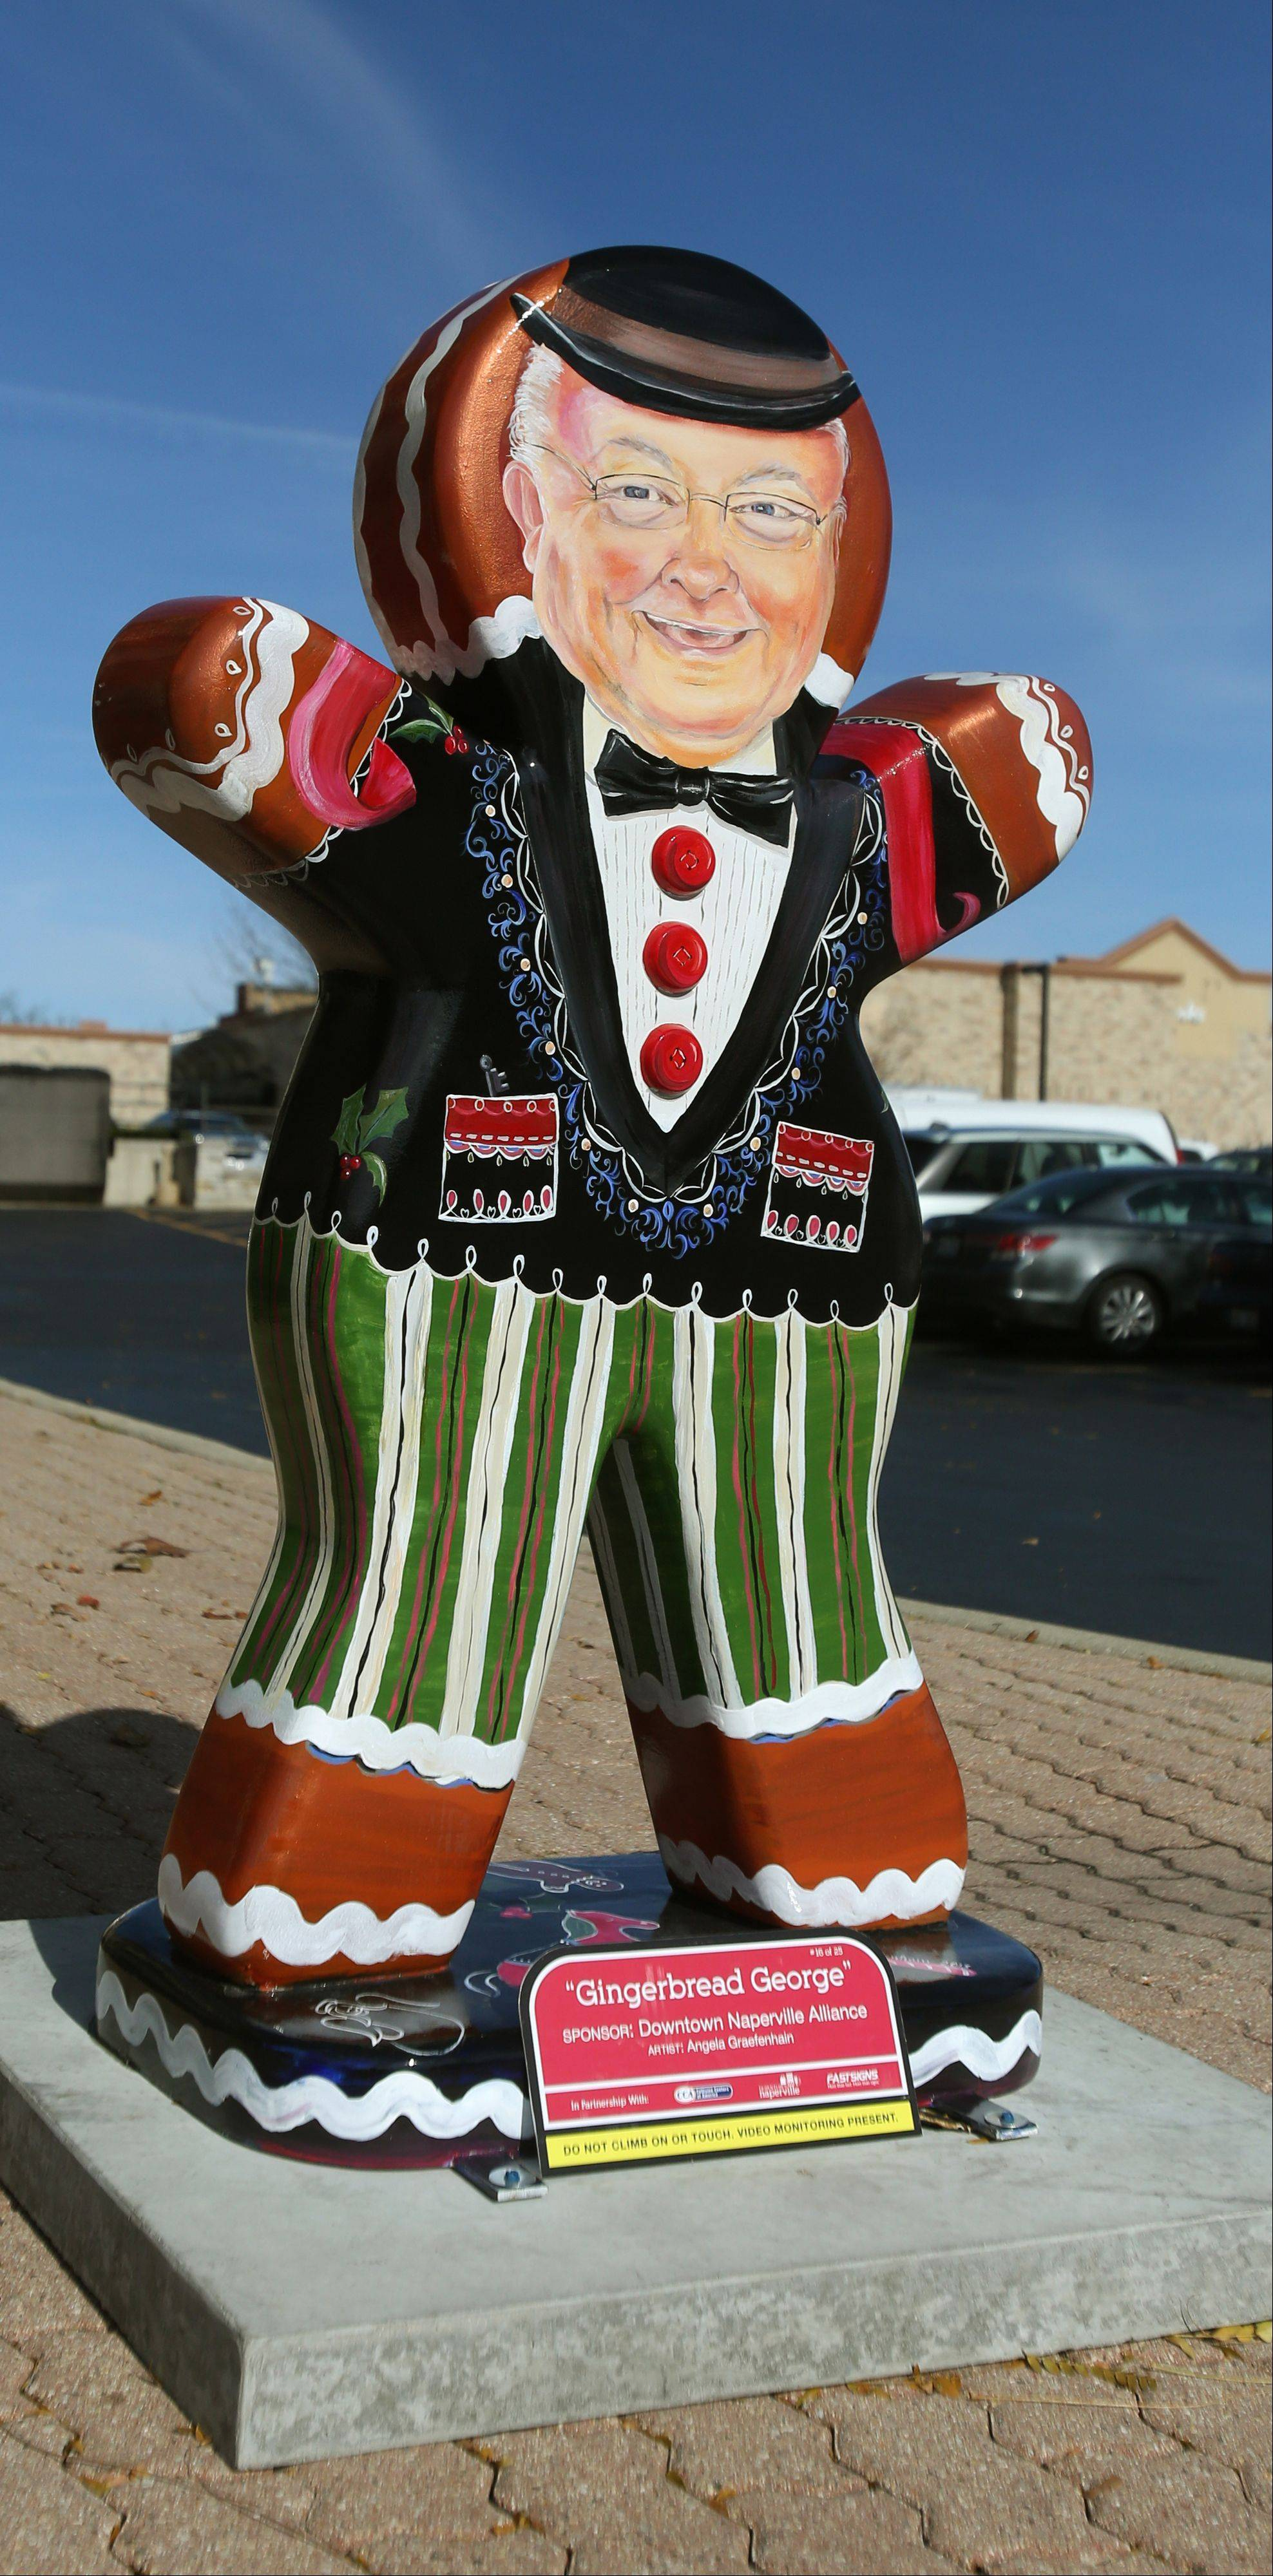 """Gingerbread George,"" designed to look like Naperville Mayor George Pradel, is one of 25 decorated gingerbread sculptures on display in downtown Naperville throughout the holiday season. Visitors can vote for their favorite at downtownnaperville.com/gingerbread."